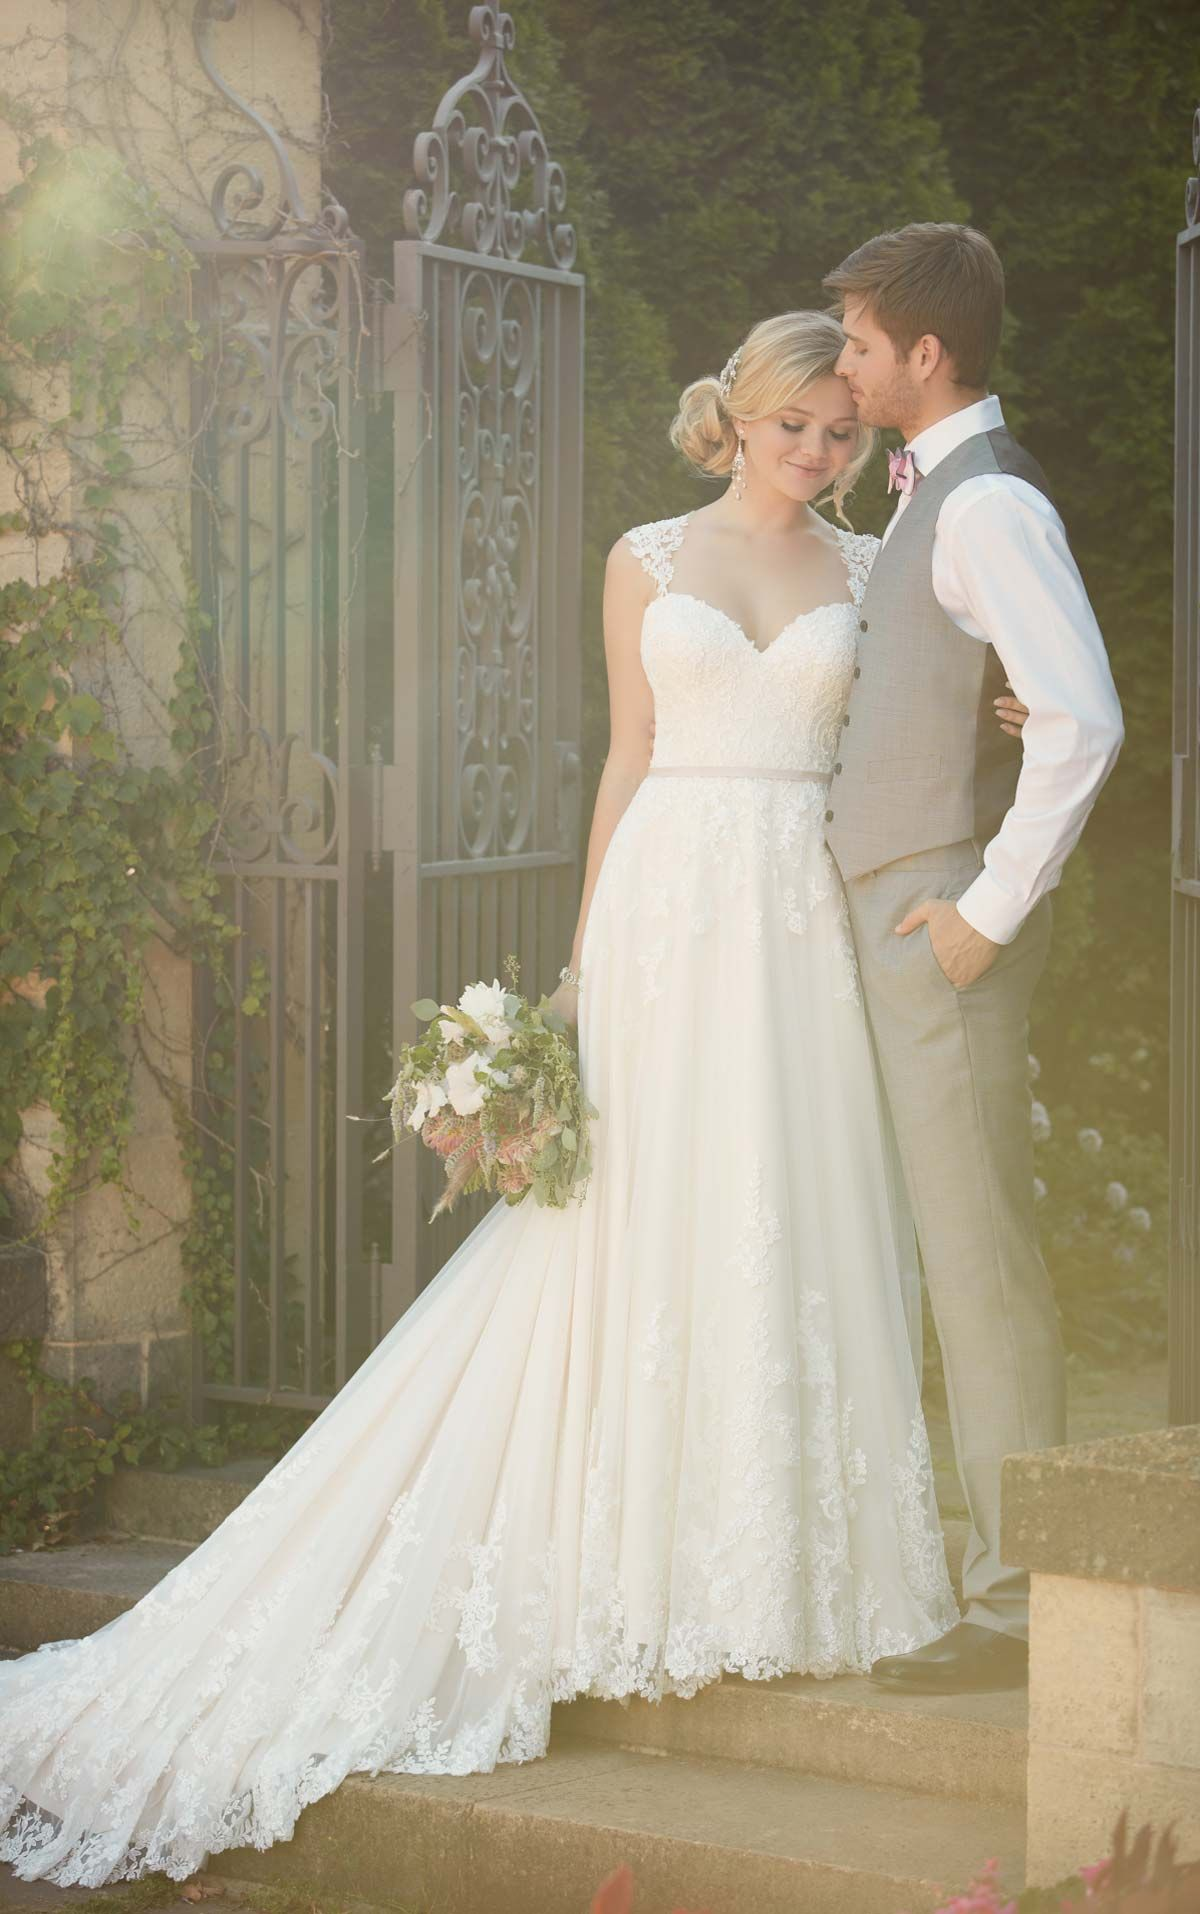 This lace over matteside Lustre satin Aline